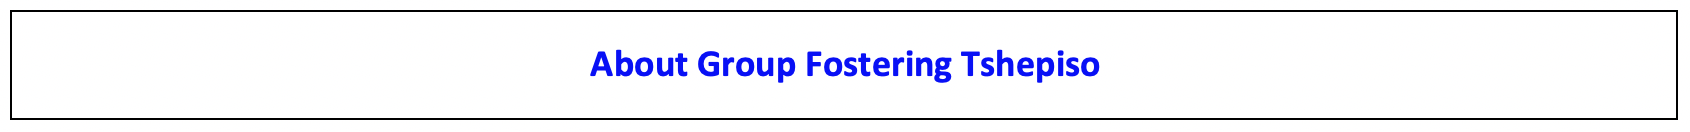 Enjoy Africa Tours About Group Fostering